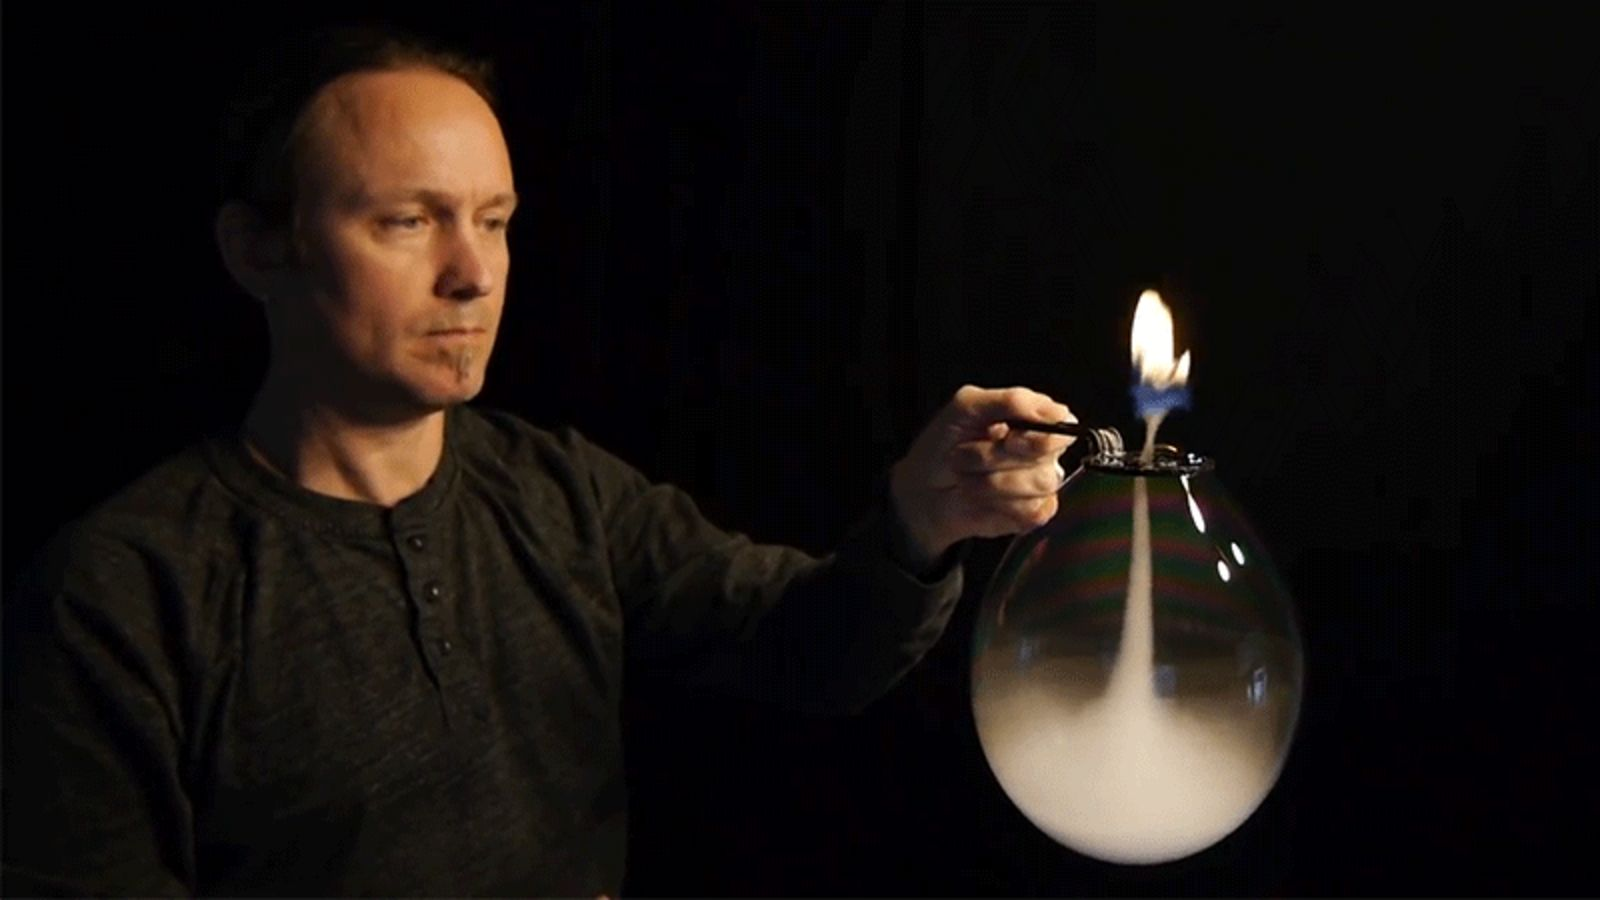 Watch This Guy Blow An Upside-Down, Fire-Spewing Smoke Tornado Inside A Bubble 5